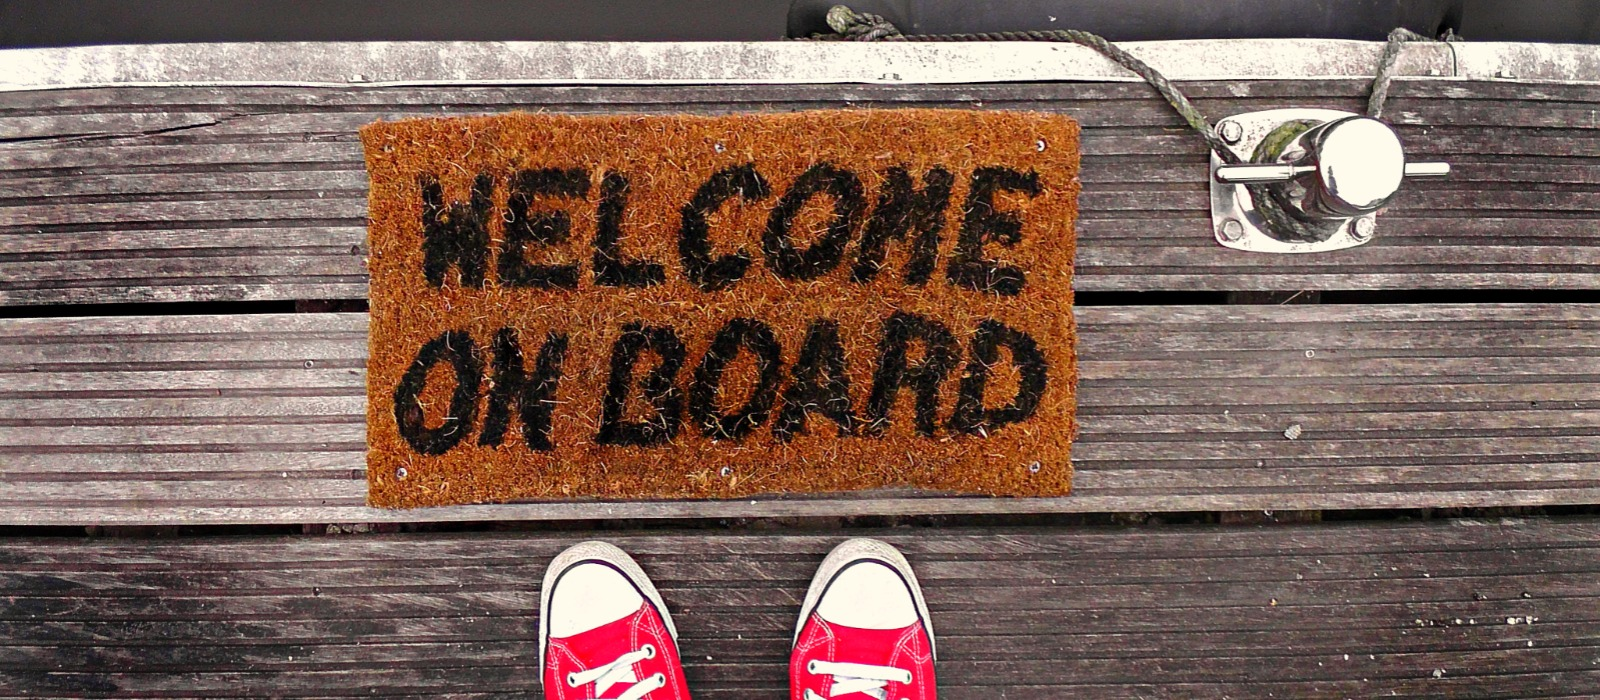 Employee Onboarding in Corporations